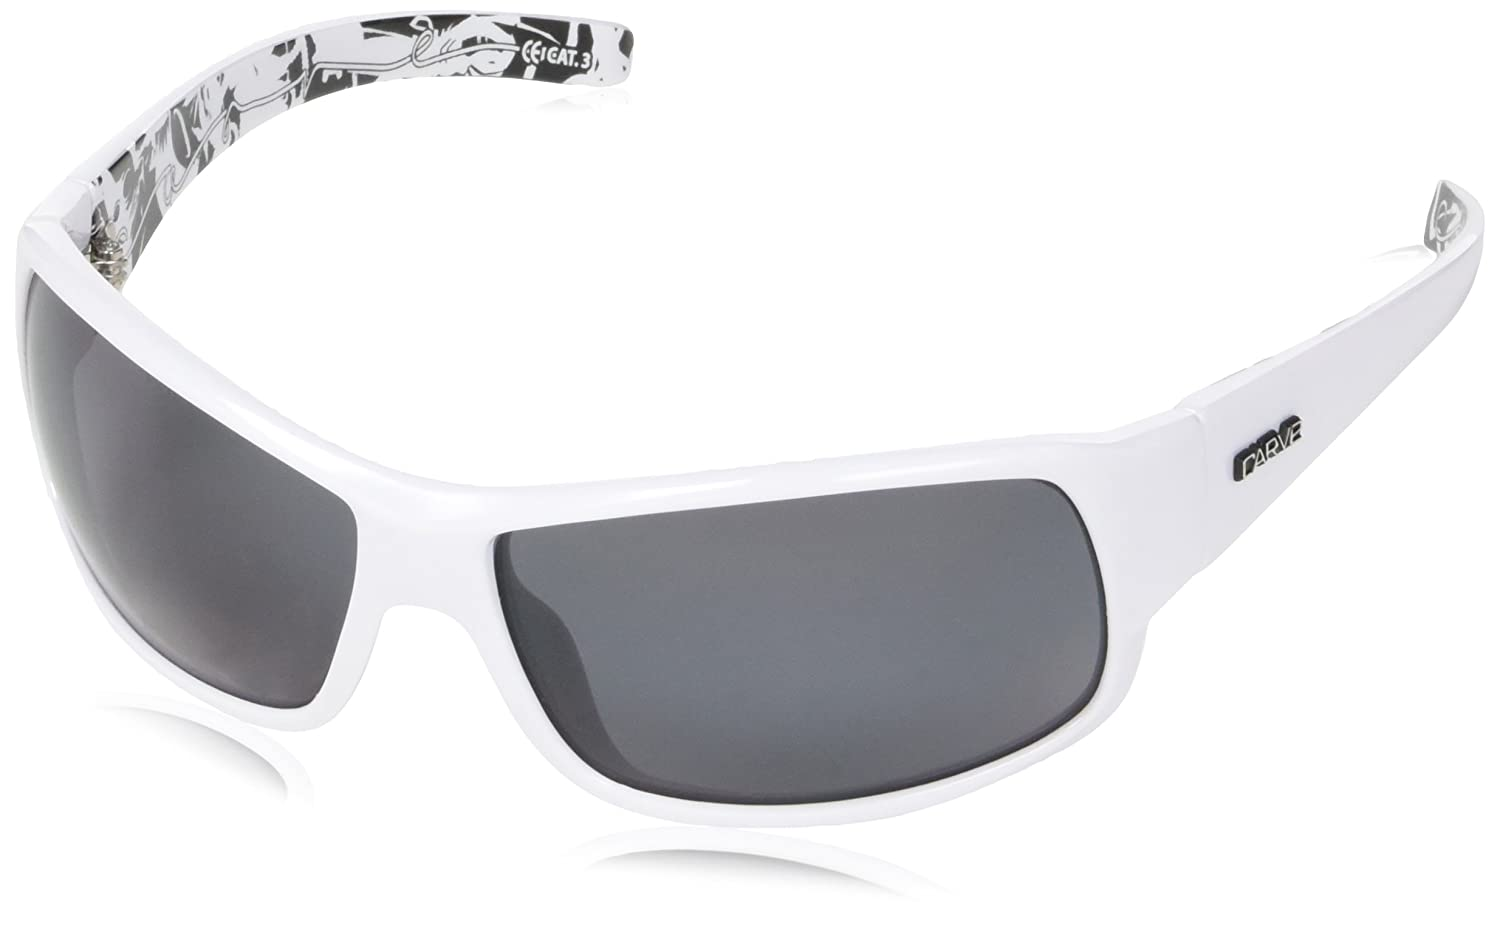 10c93ea3d78a2 Amazon.com  CARVE Eyewear Sunglasses Sonny Black Signature Polarized Grey  Lens  Sports   Outdoors